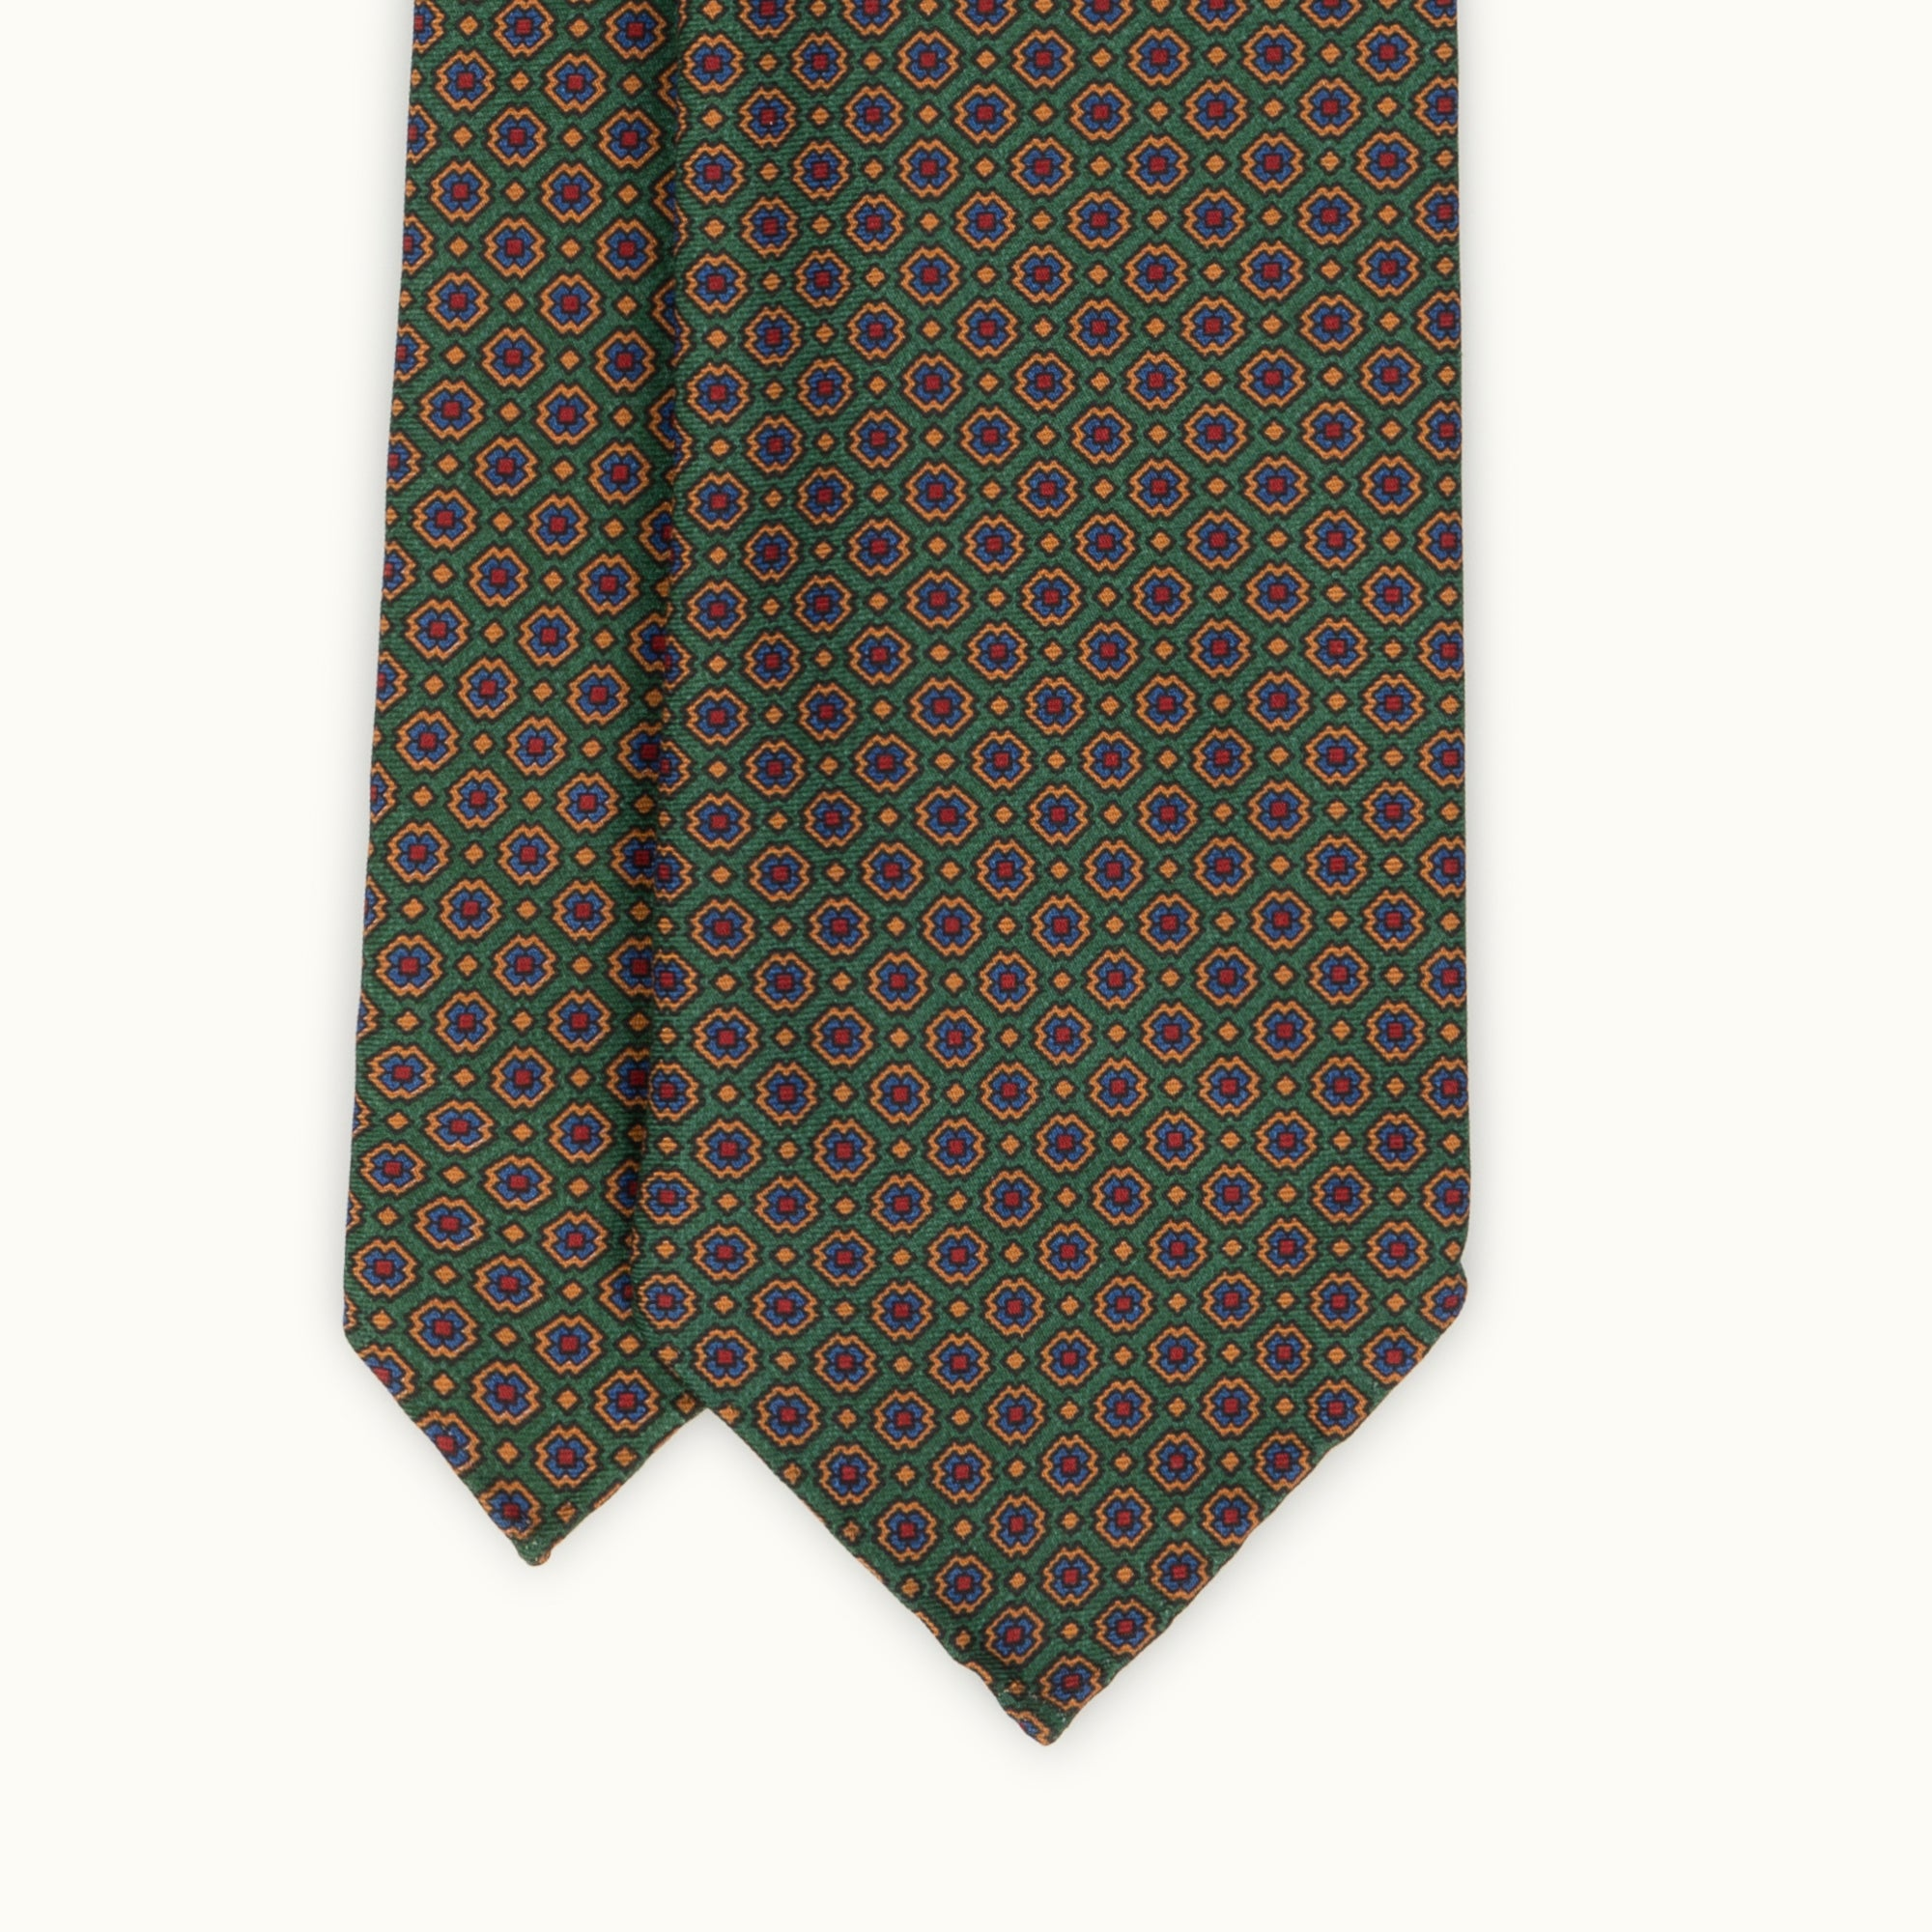 Green & Copper Heritage Madder Silk Tie